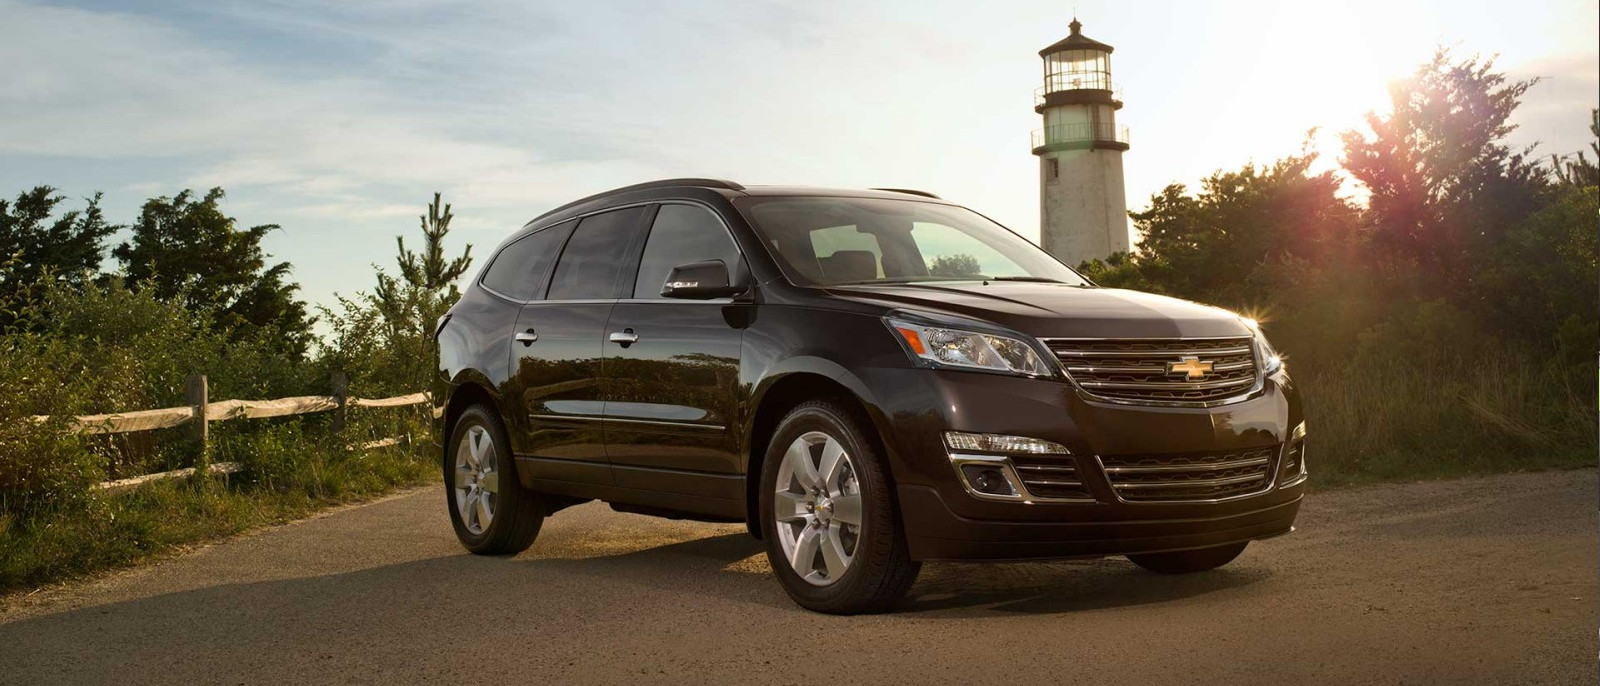 2014 chevy traverse florence ky cincinnati oh tom gill chevrolet. Cars Review. Best American Auto & Cars Review